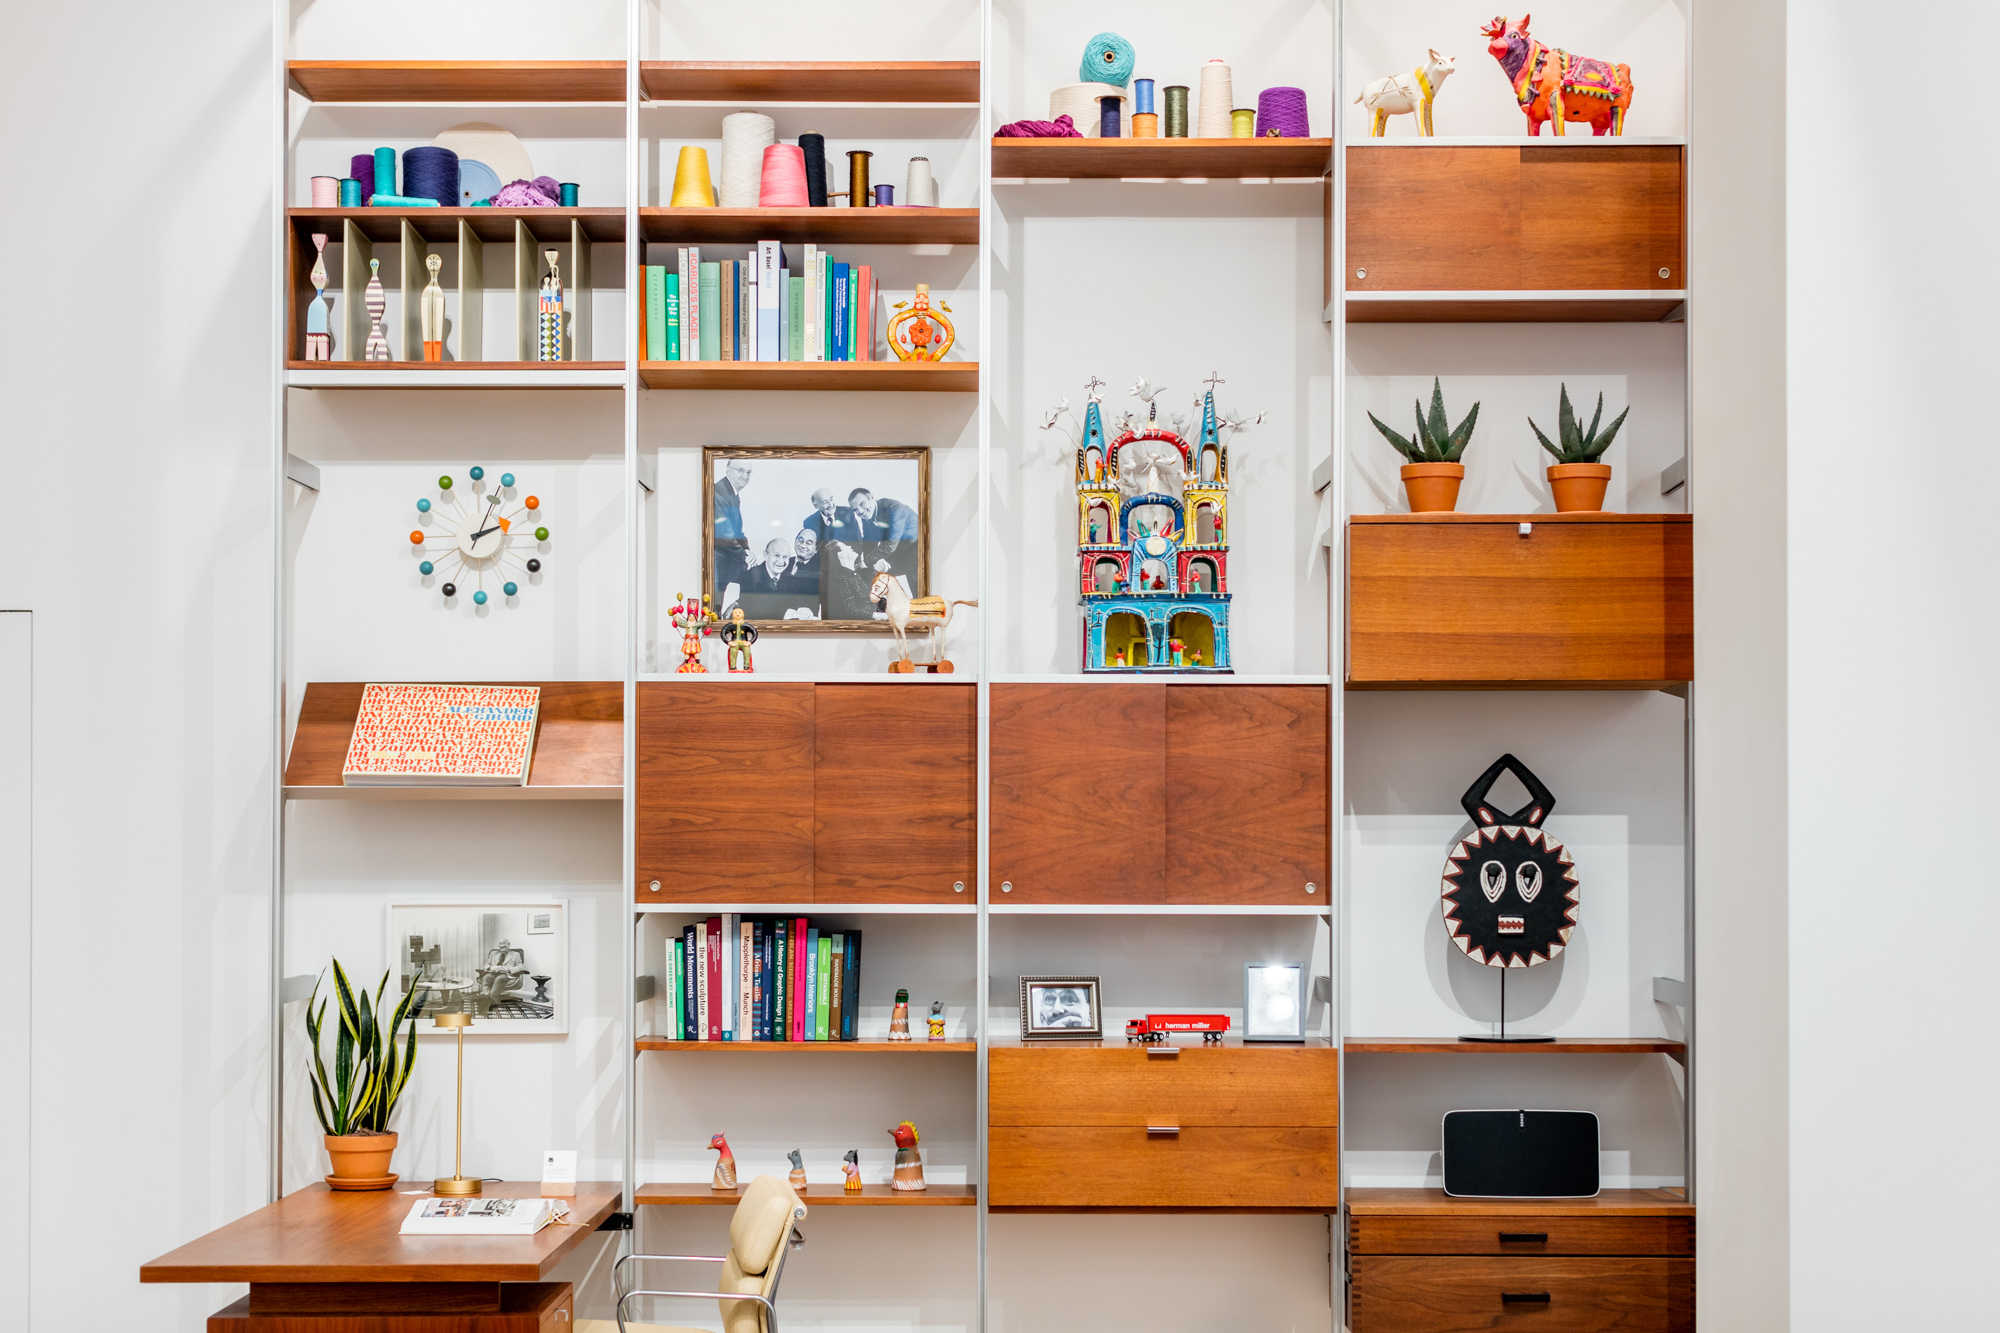 herman miller unveils its nyc flagship full of midcentury  - herman miller unveils its nyc flagship full of midcentury silhouettes